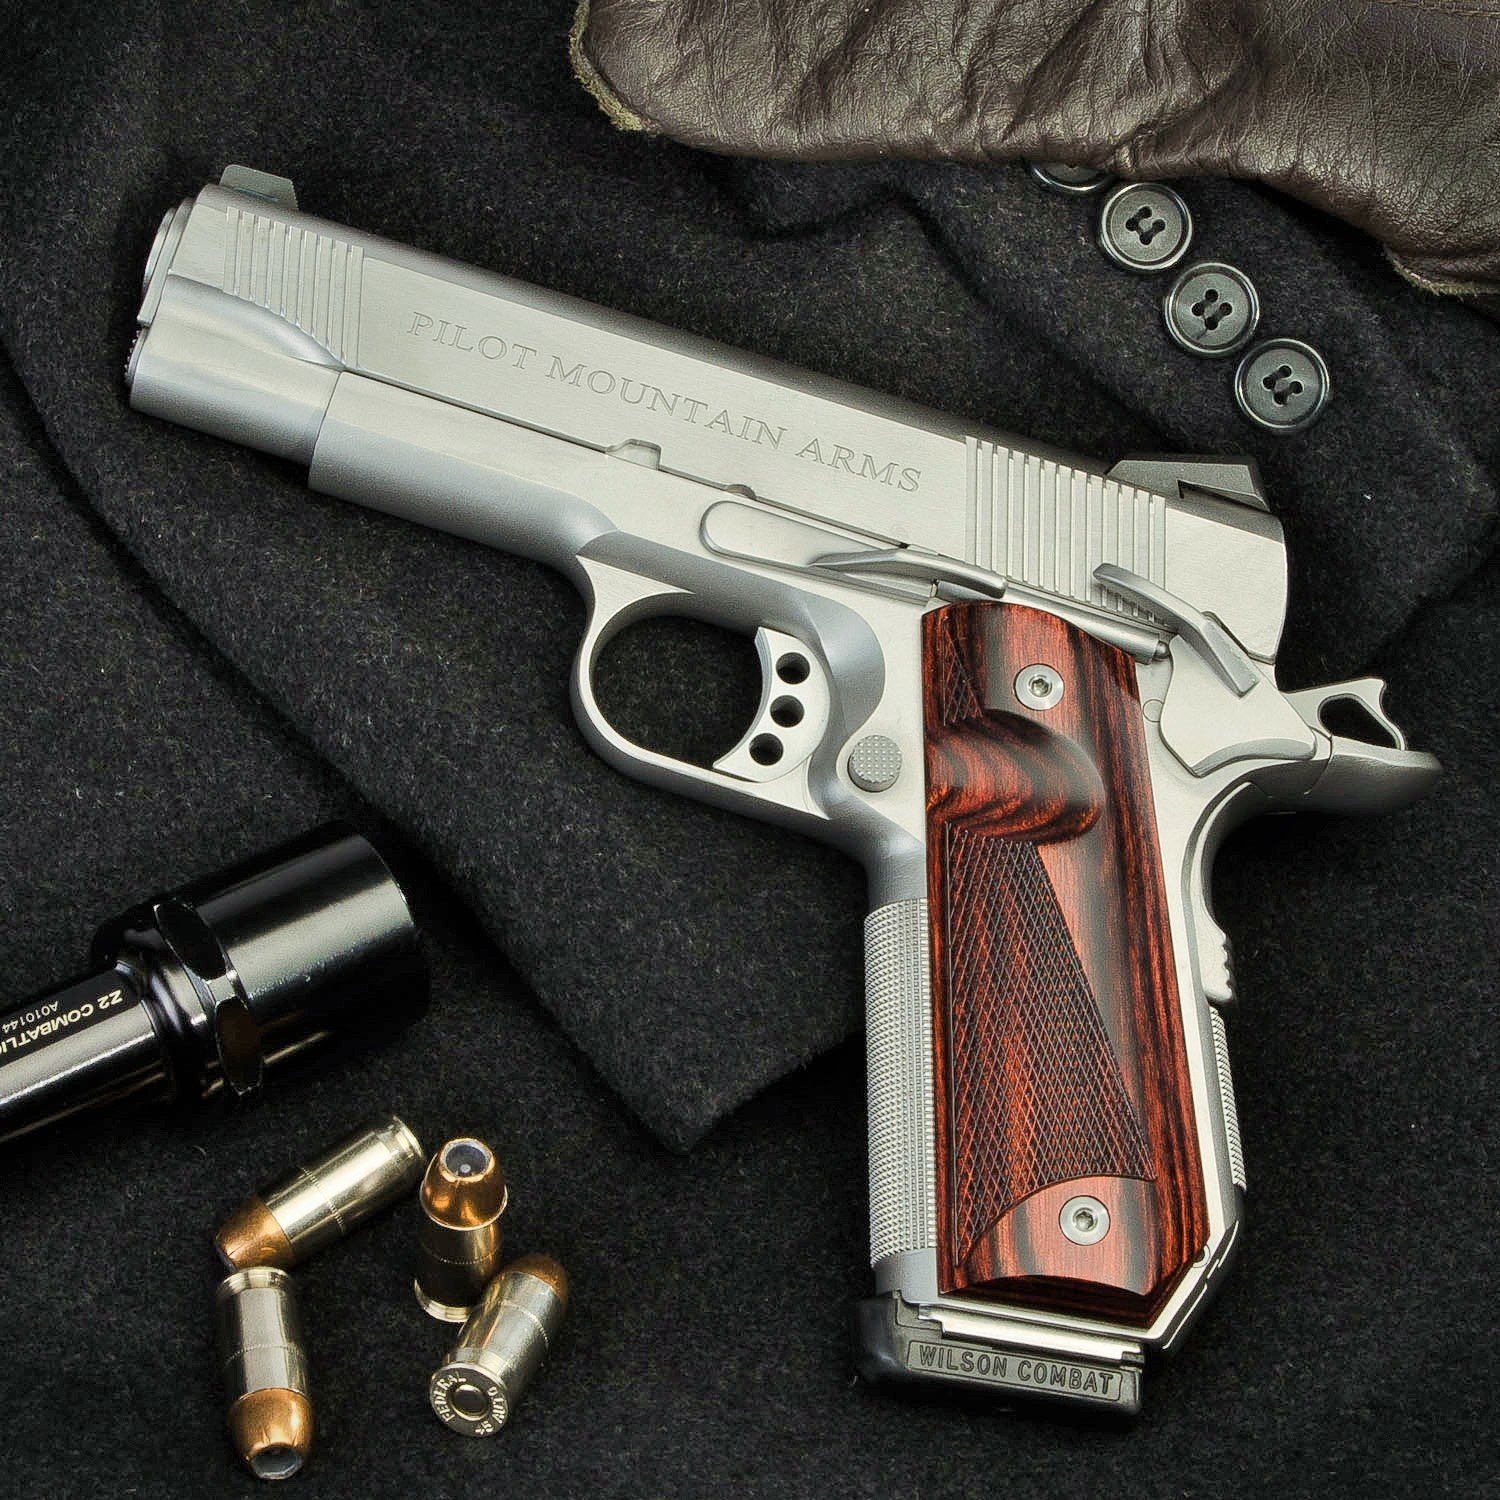 "Pilot Mountain Arms EDC Model 4.25"", .45cal 1911 Pistol"